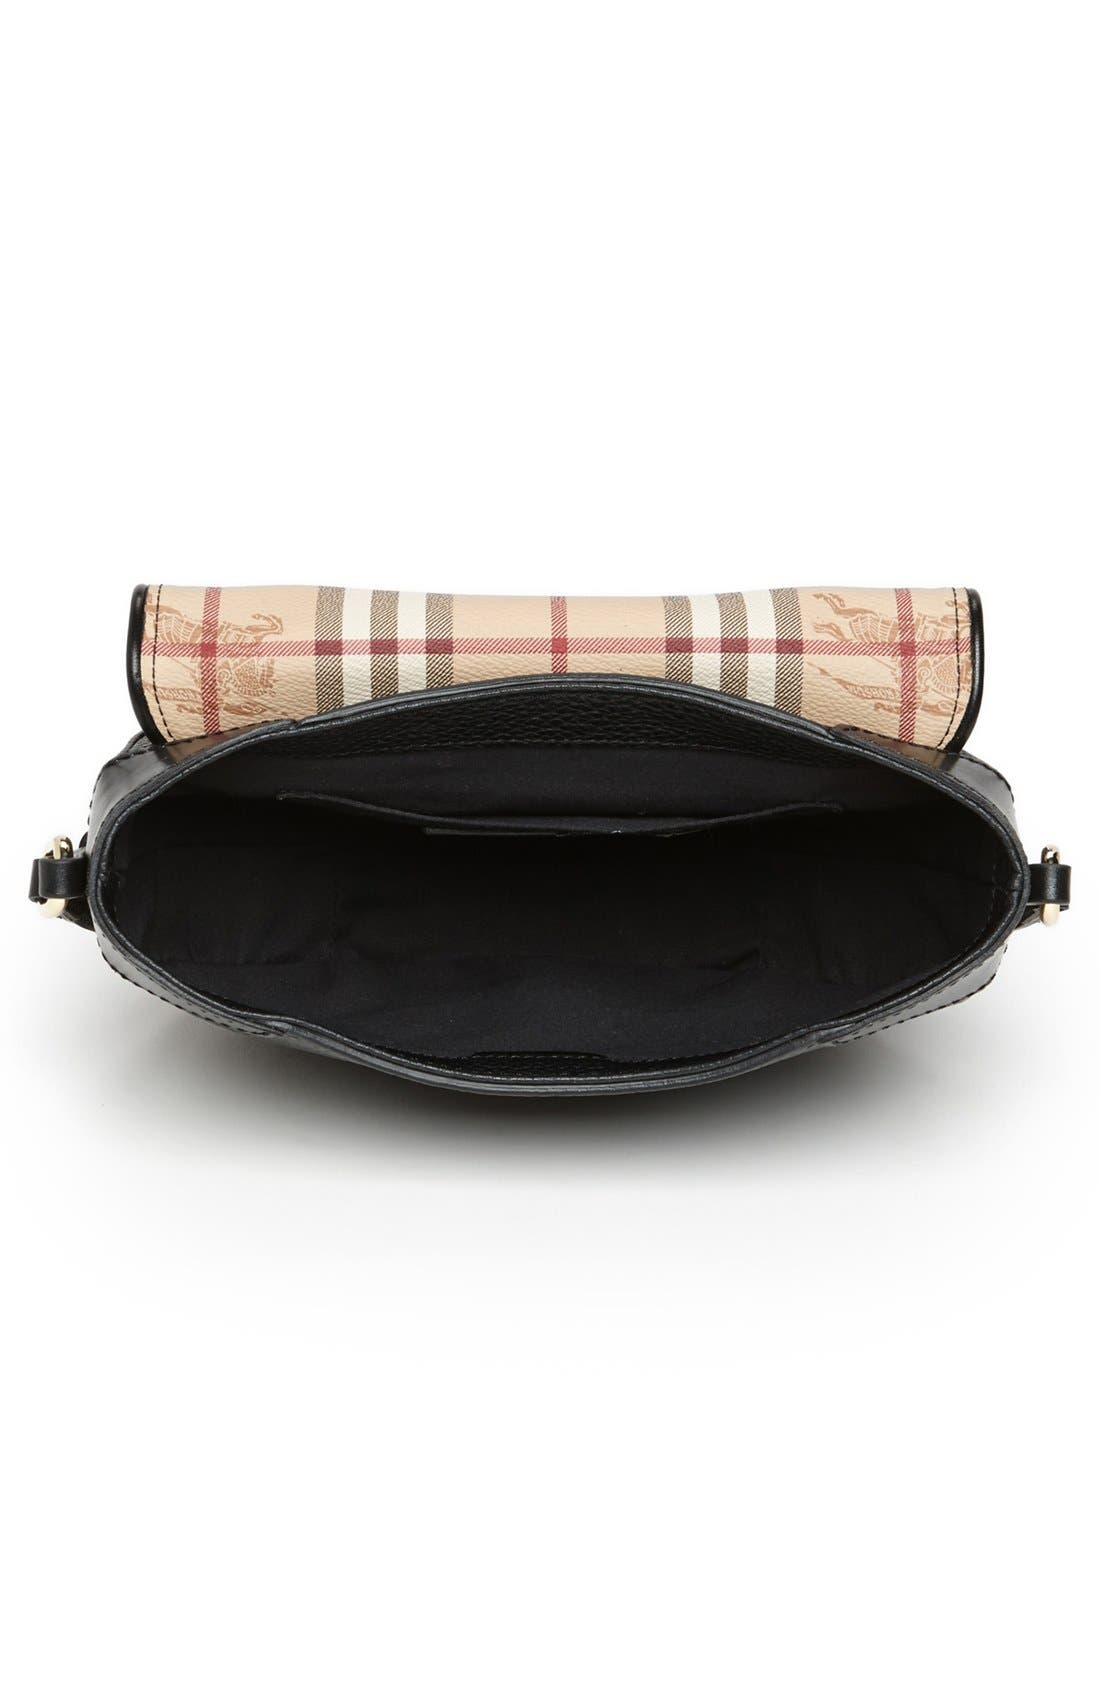 Alternate Image 3  - Burberry 'Small Maydown' Leather Crossbody Bag